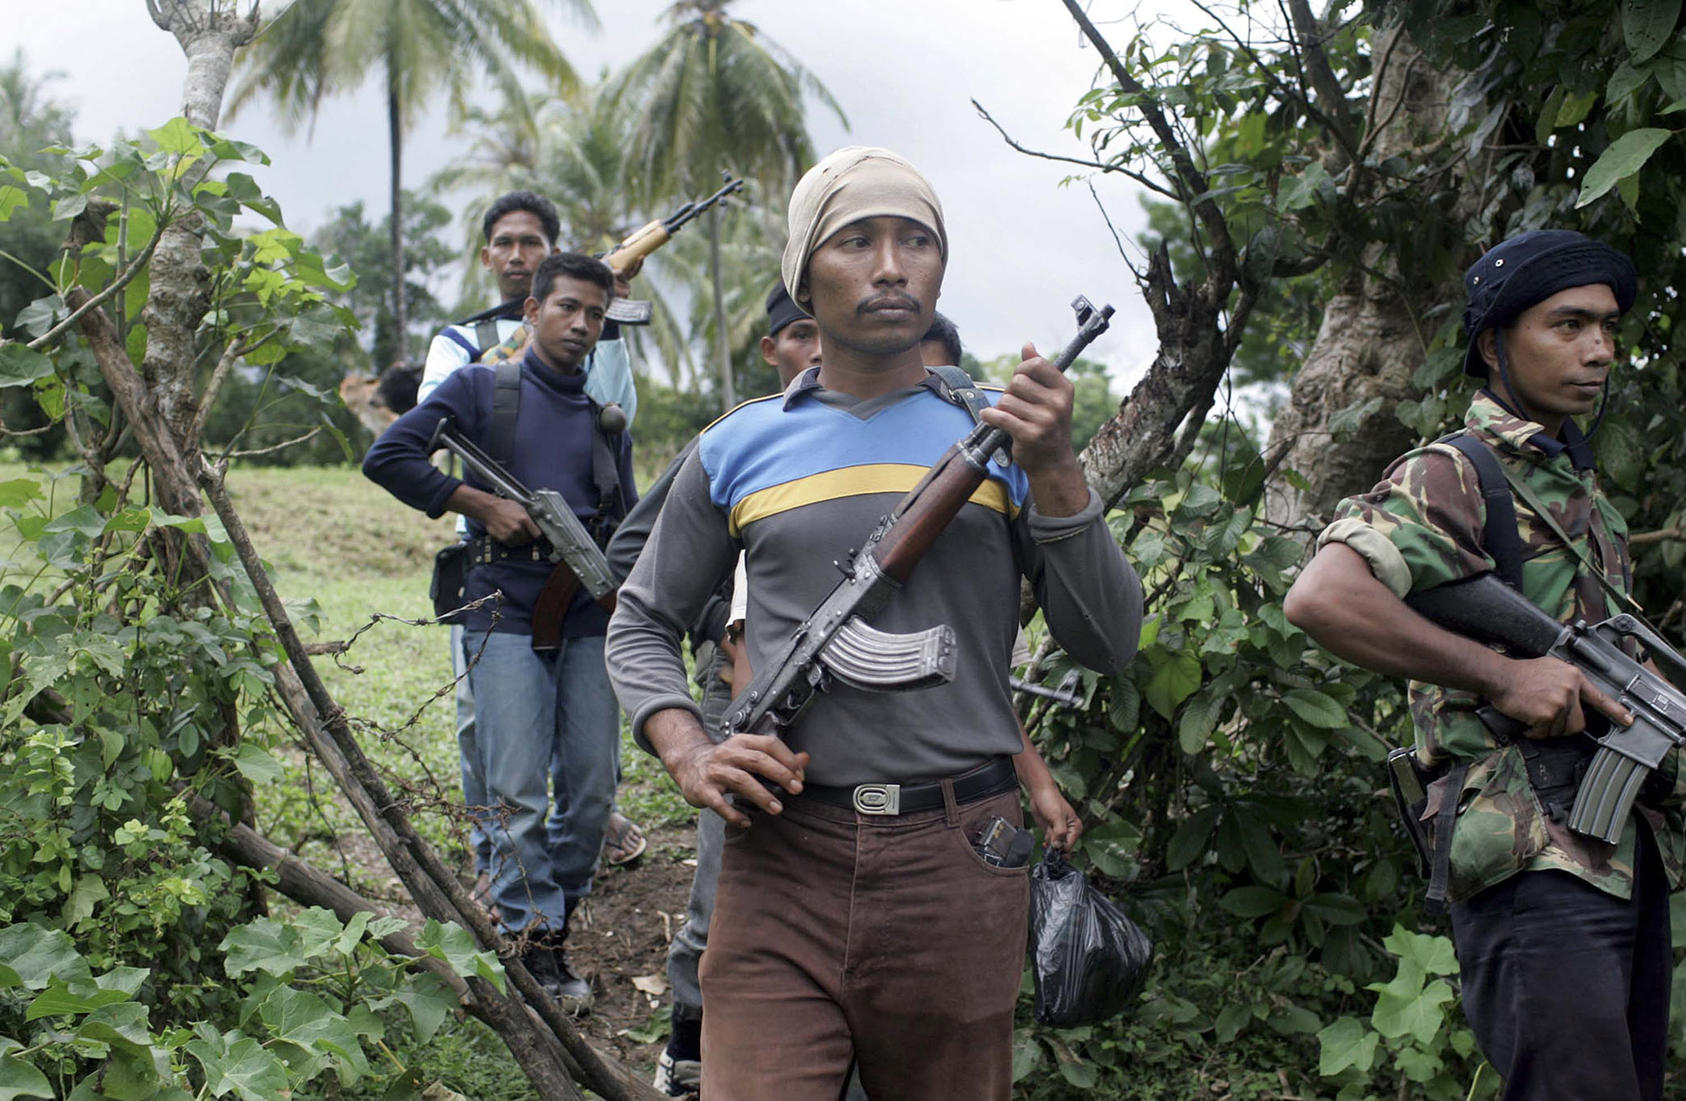 Separatist fighters in Aceh patrolled shortly before their leaders signed a 2005 peace accord with Indonesia's government. The accord built was built on the two sides' cooperation in response to the 2004 Indian Ocean tsunami. (Tyler Hicks/New York Times)